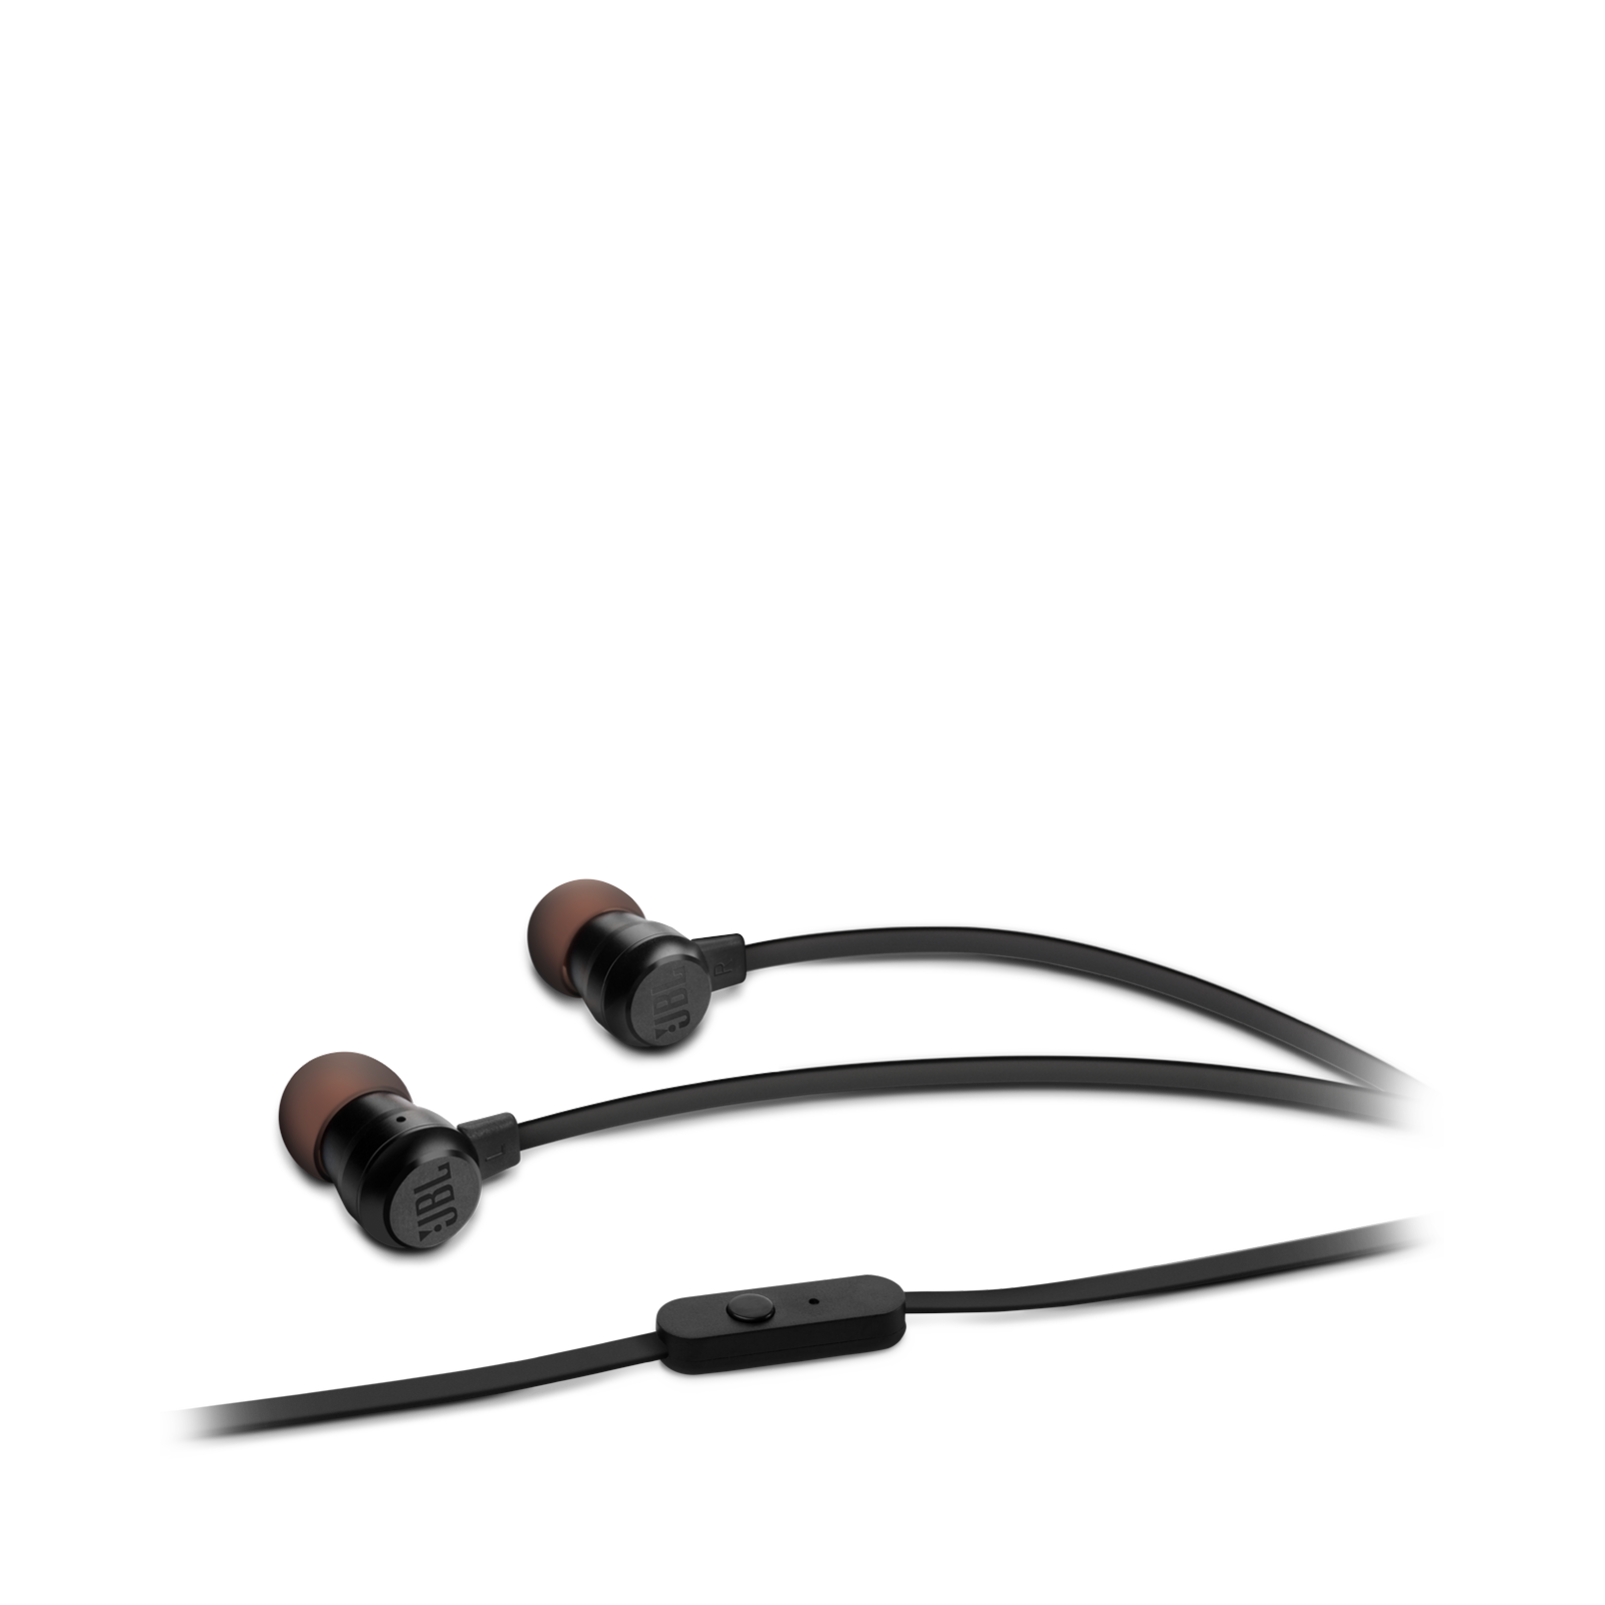 JBL T280A - Black - In-ear headphones with high performance drivers - Hero